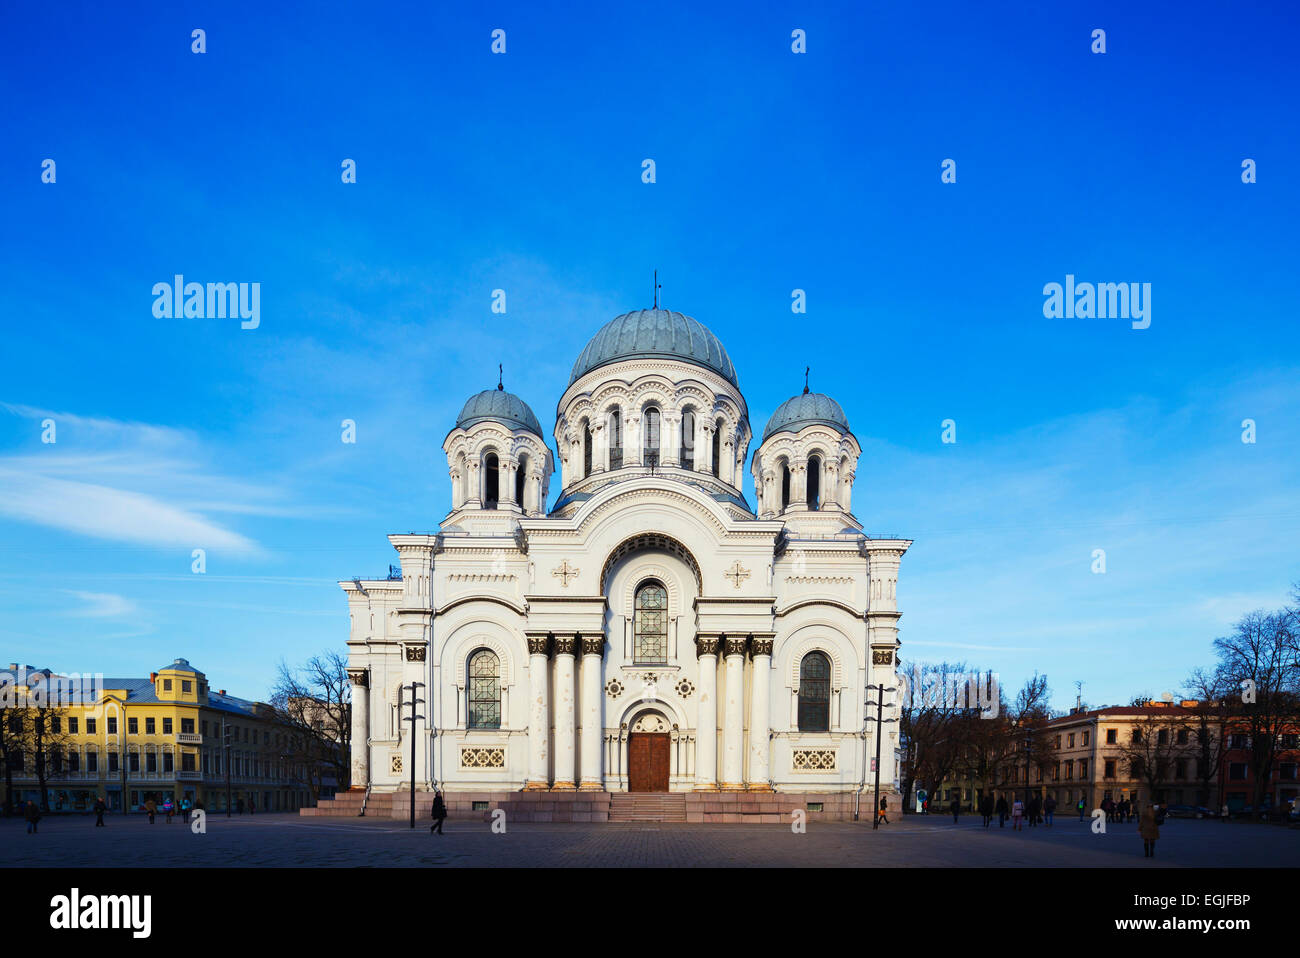 Europe, Baltic states, Lithuania, Kaunas, St. Michael the Archangel's Roman Catholic church, Neo-Byzantine style - Stock Image